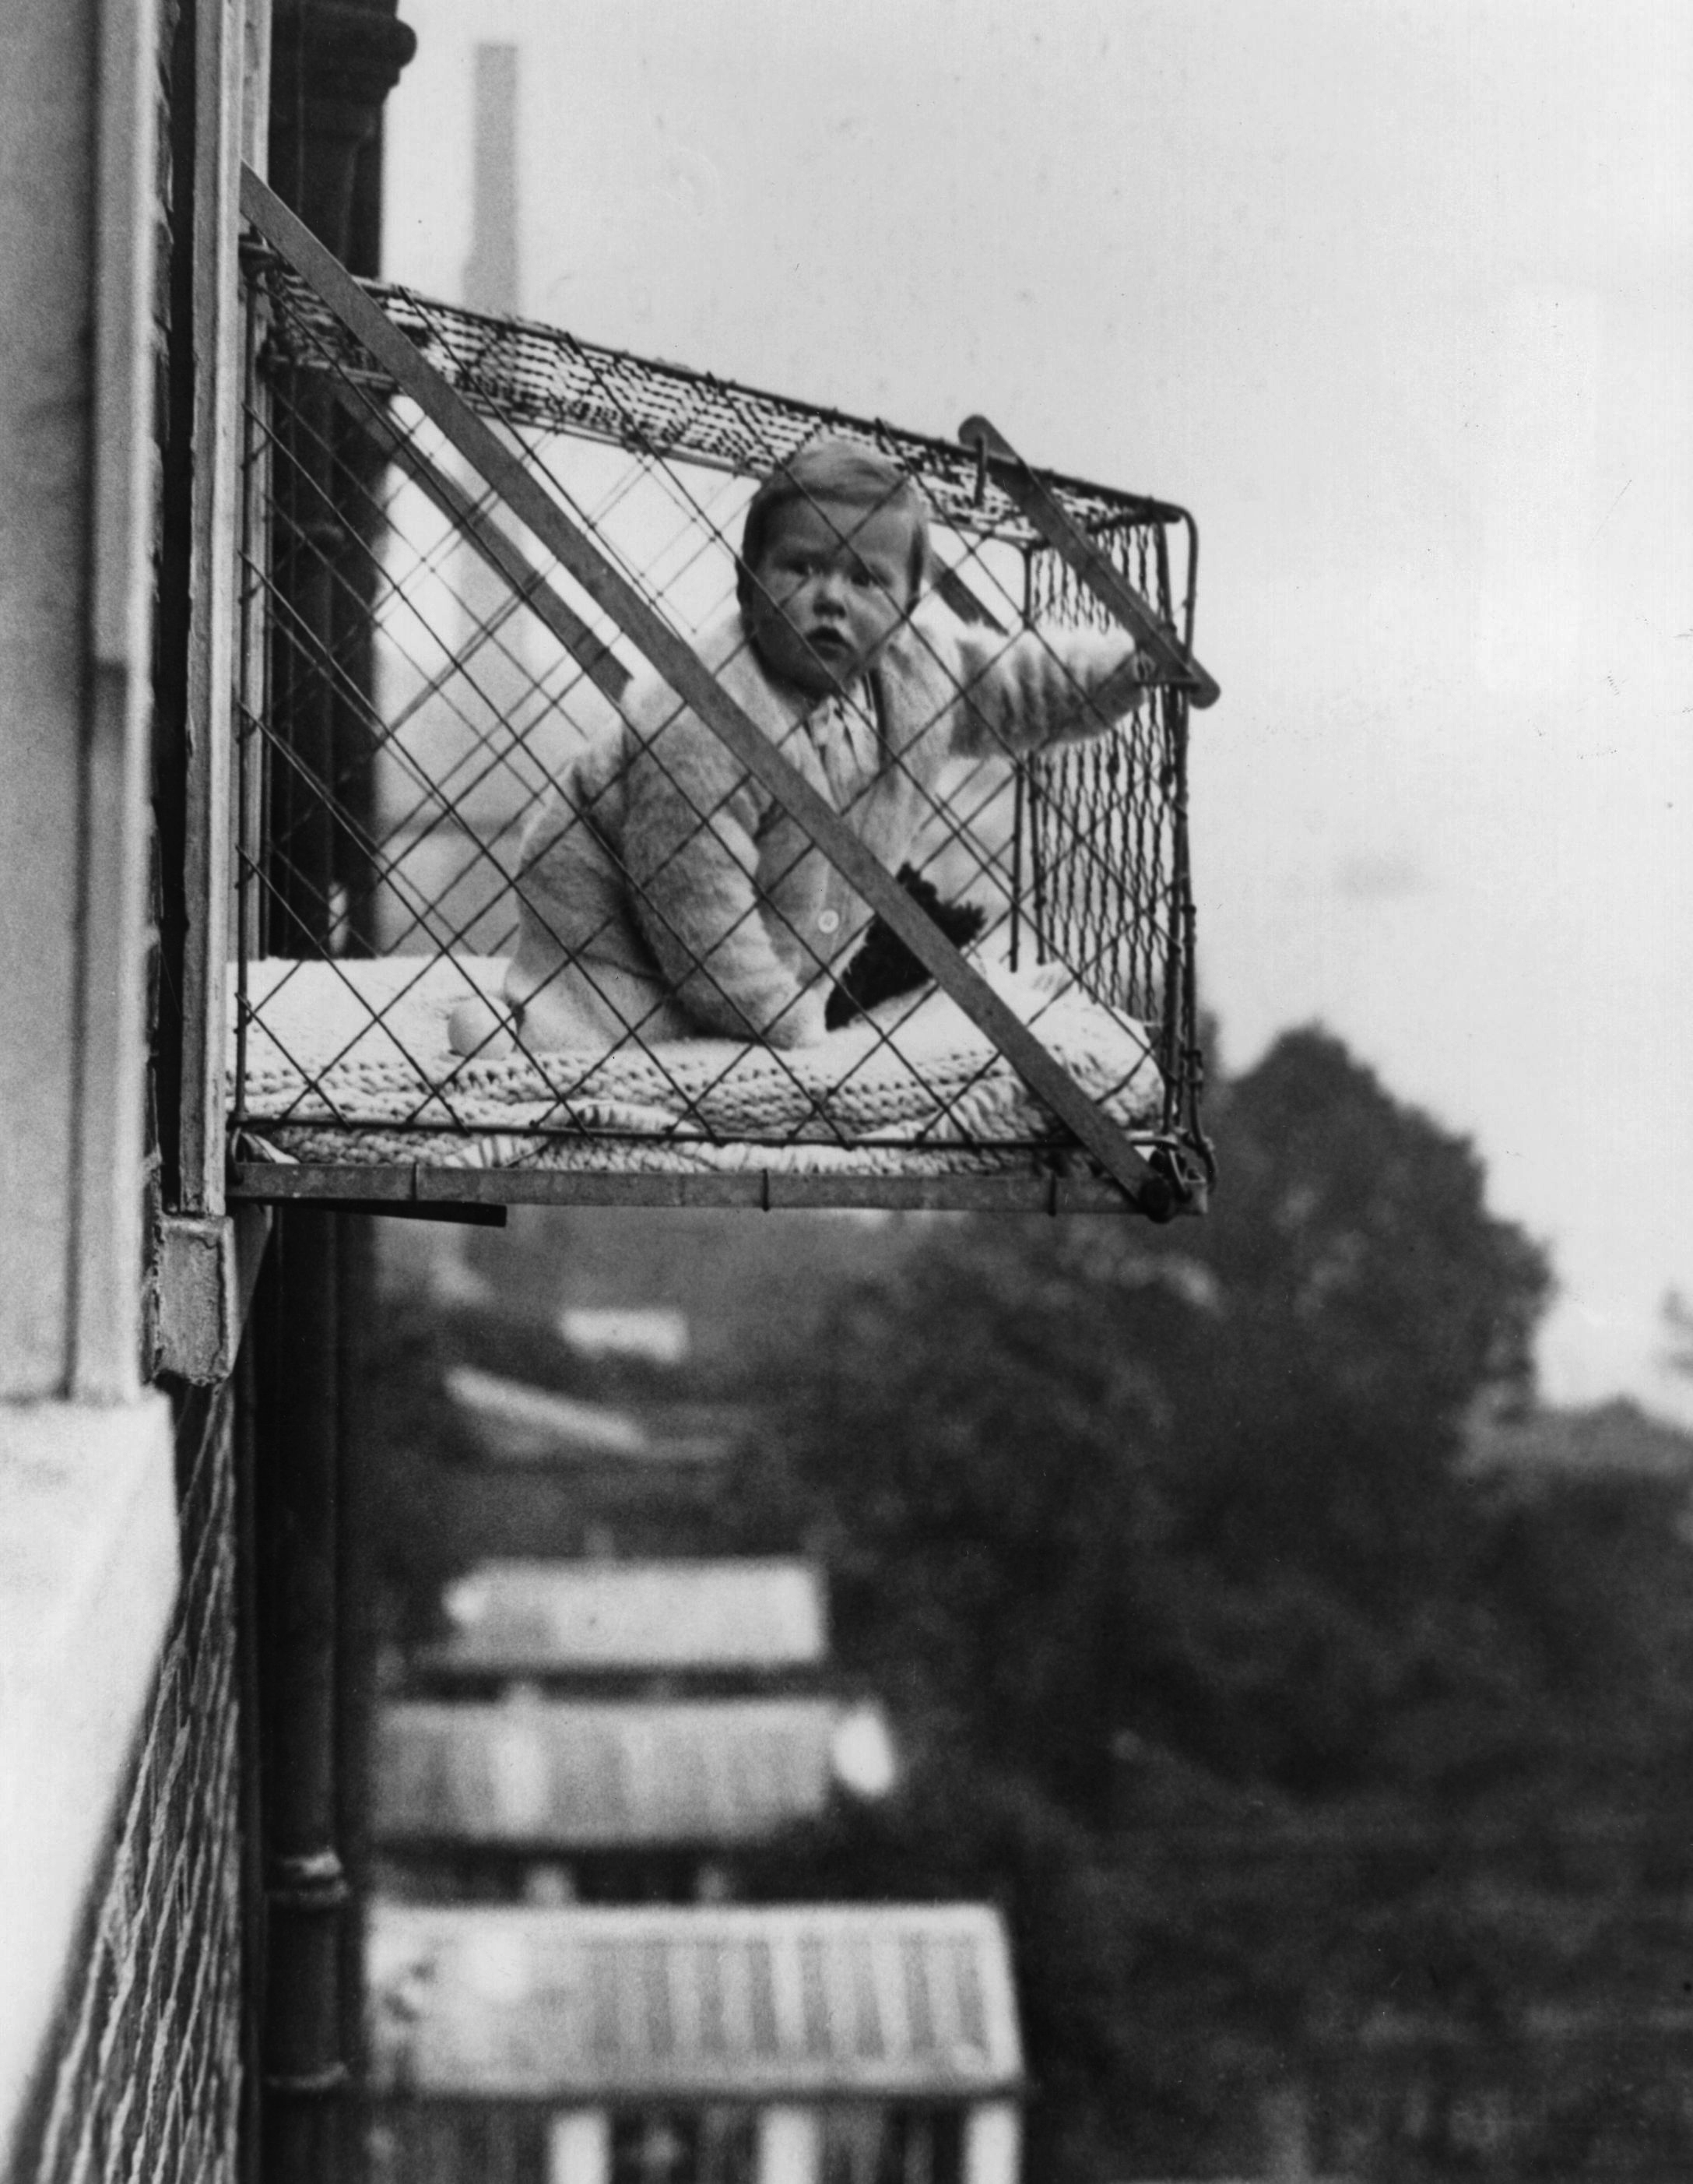 A fresh baby cage.